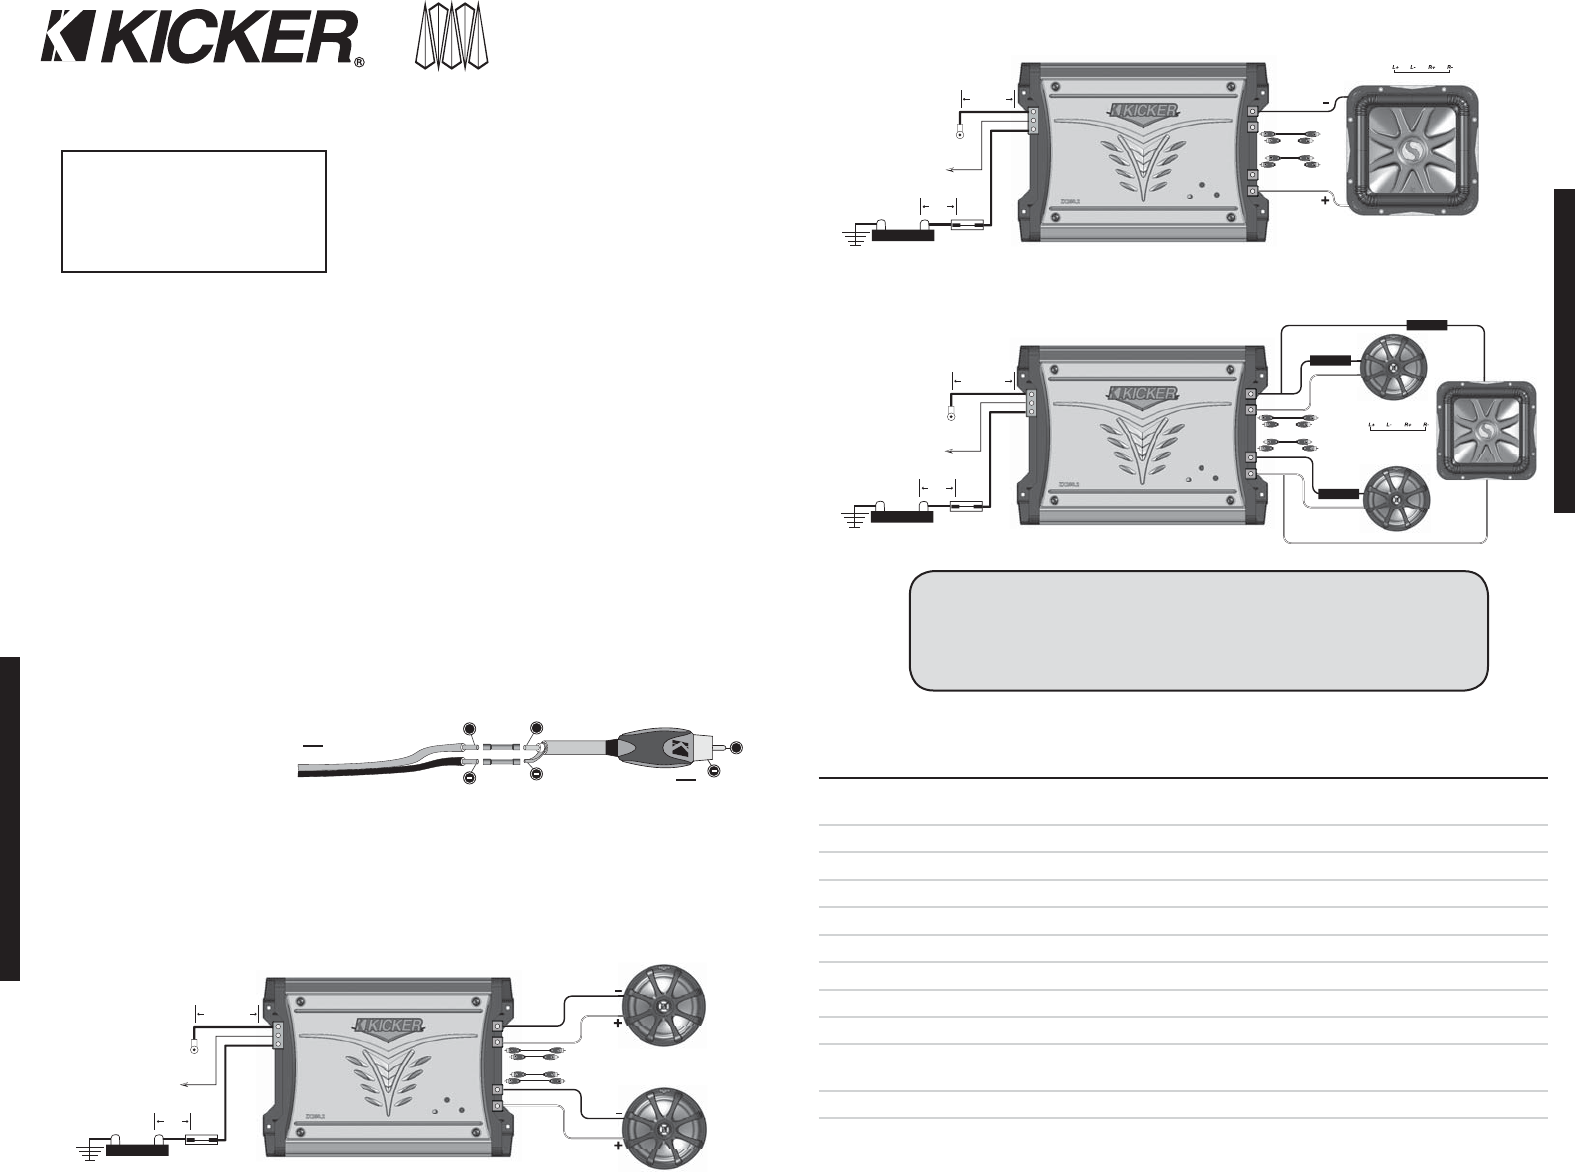 kicker cx1200 1 wiring diagram